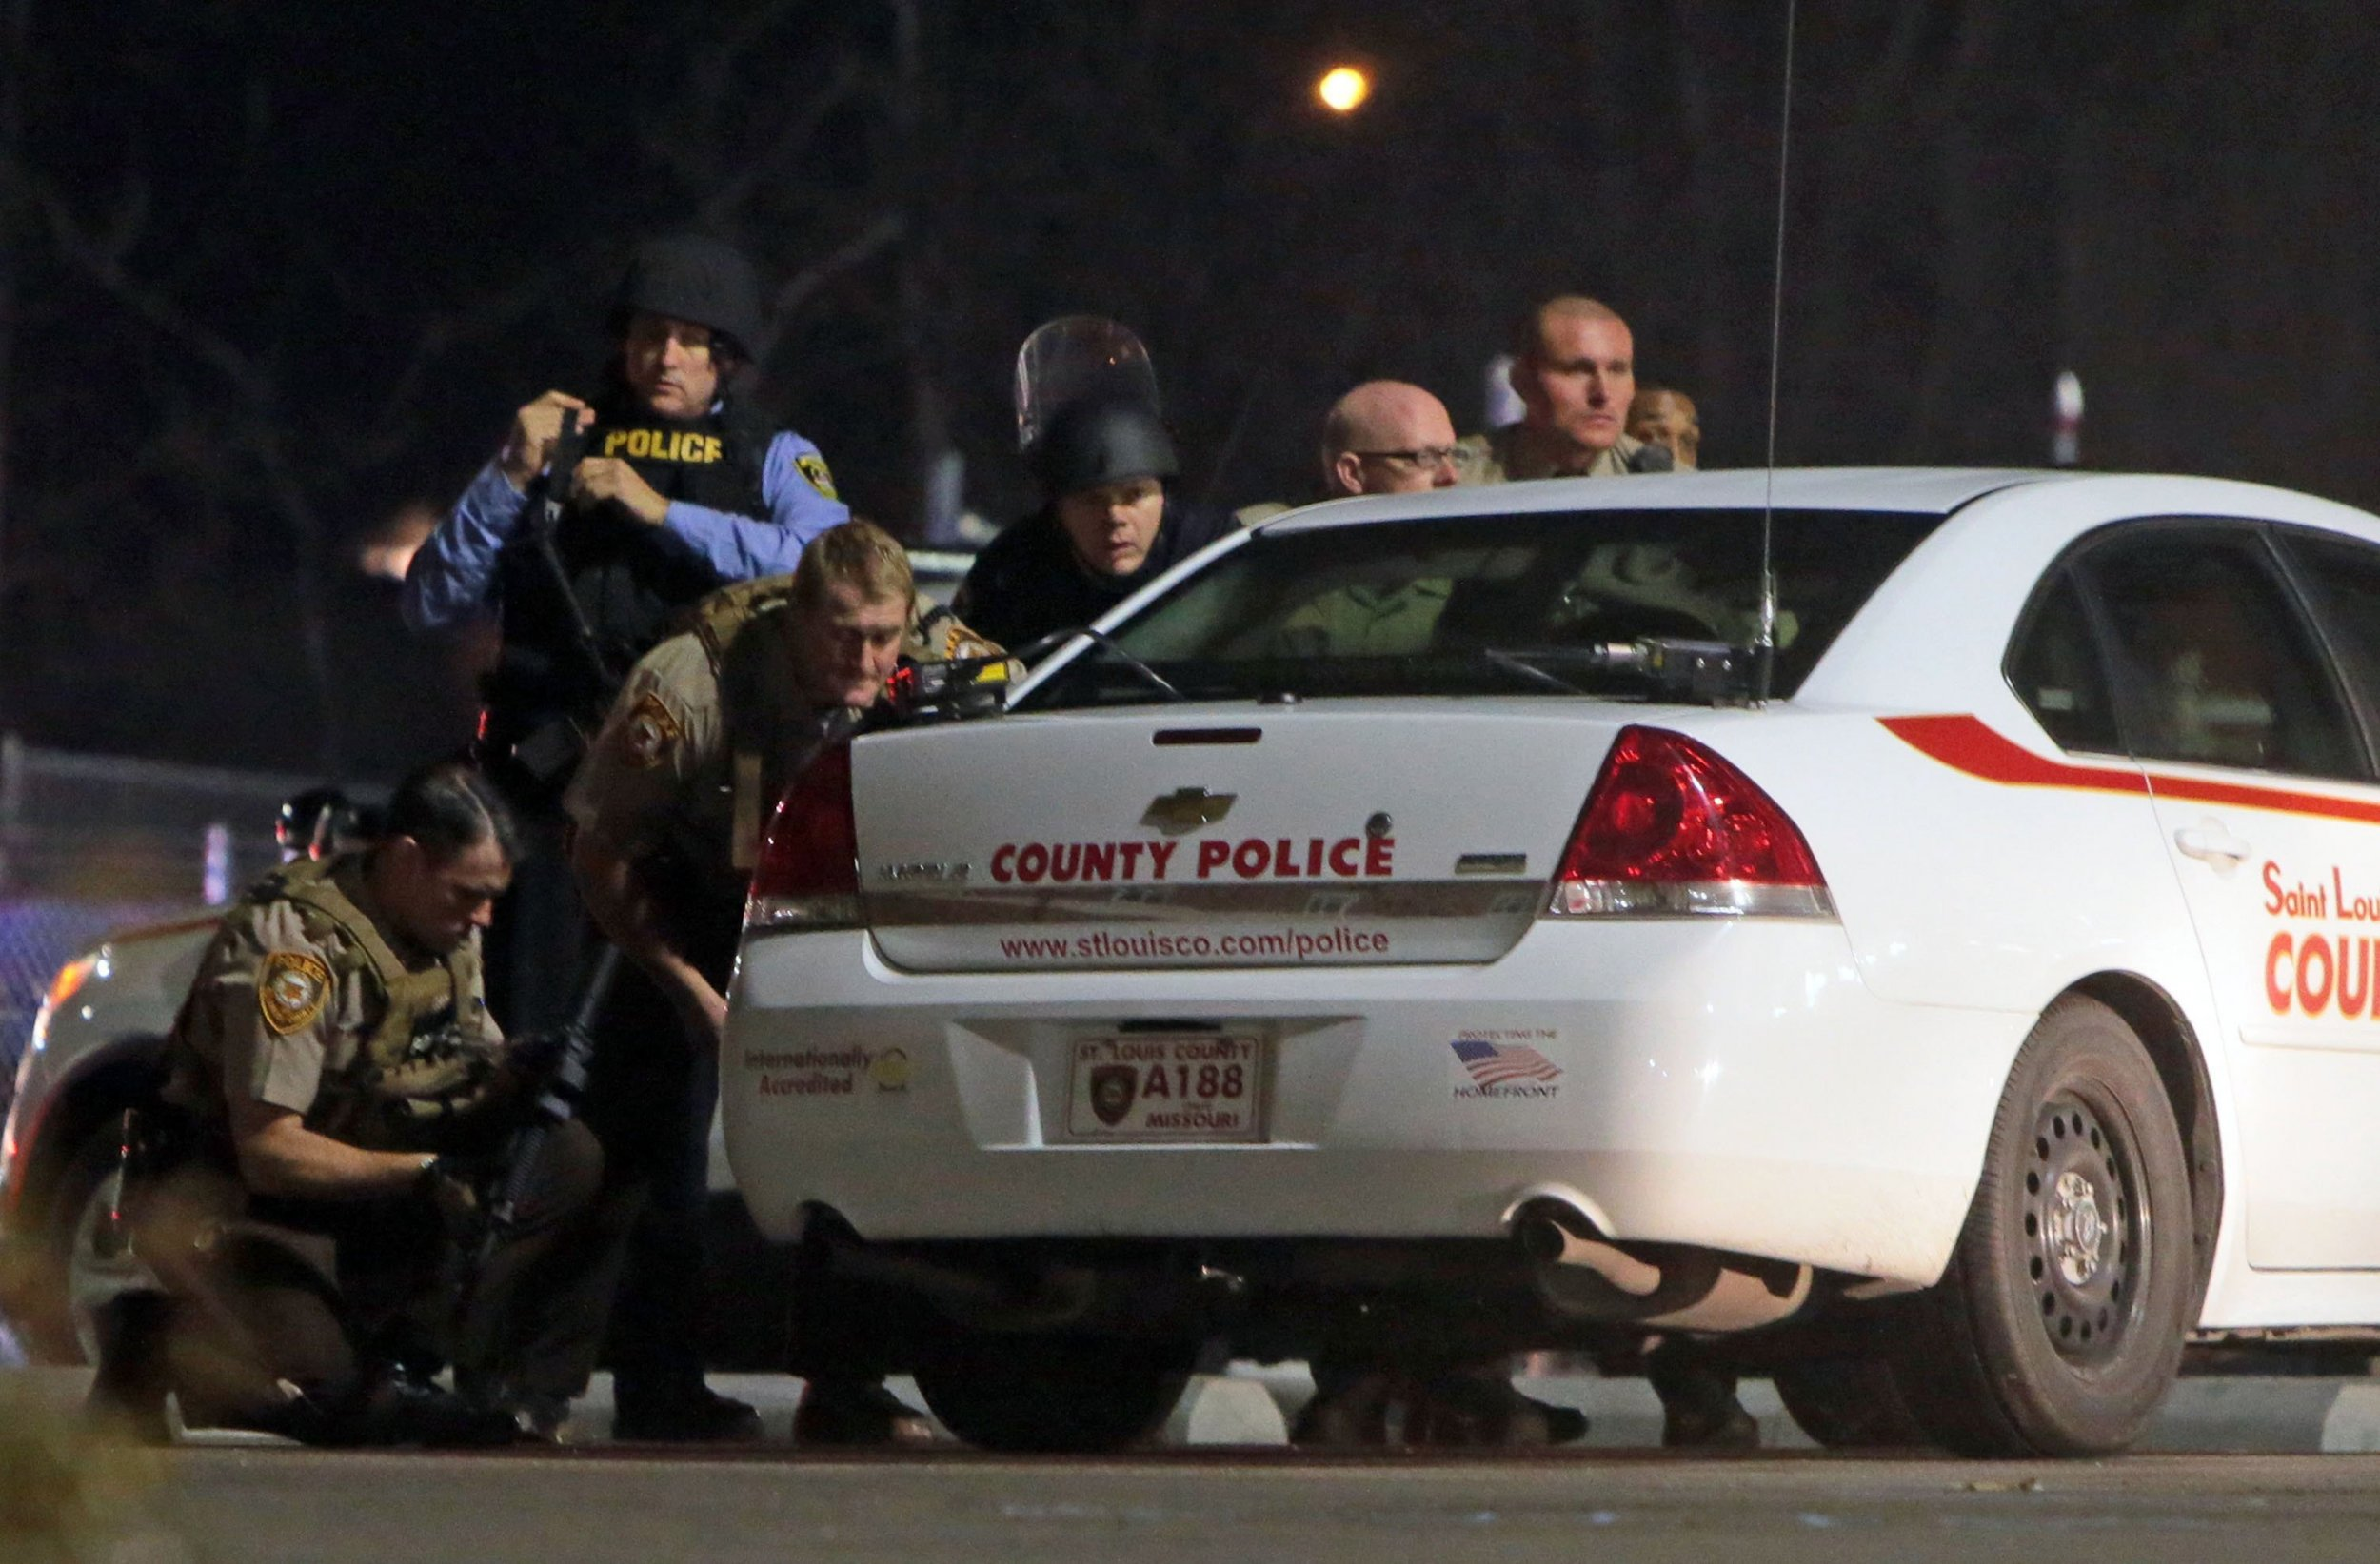 2015-03-12T135514Z_1591220524_TM3EB3C0RGX01_RTRMADP_3_USA-MISSOURI-SHOOTING-PROTEST